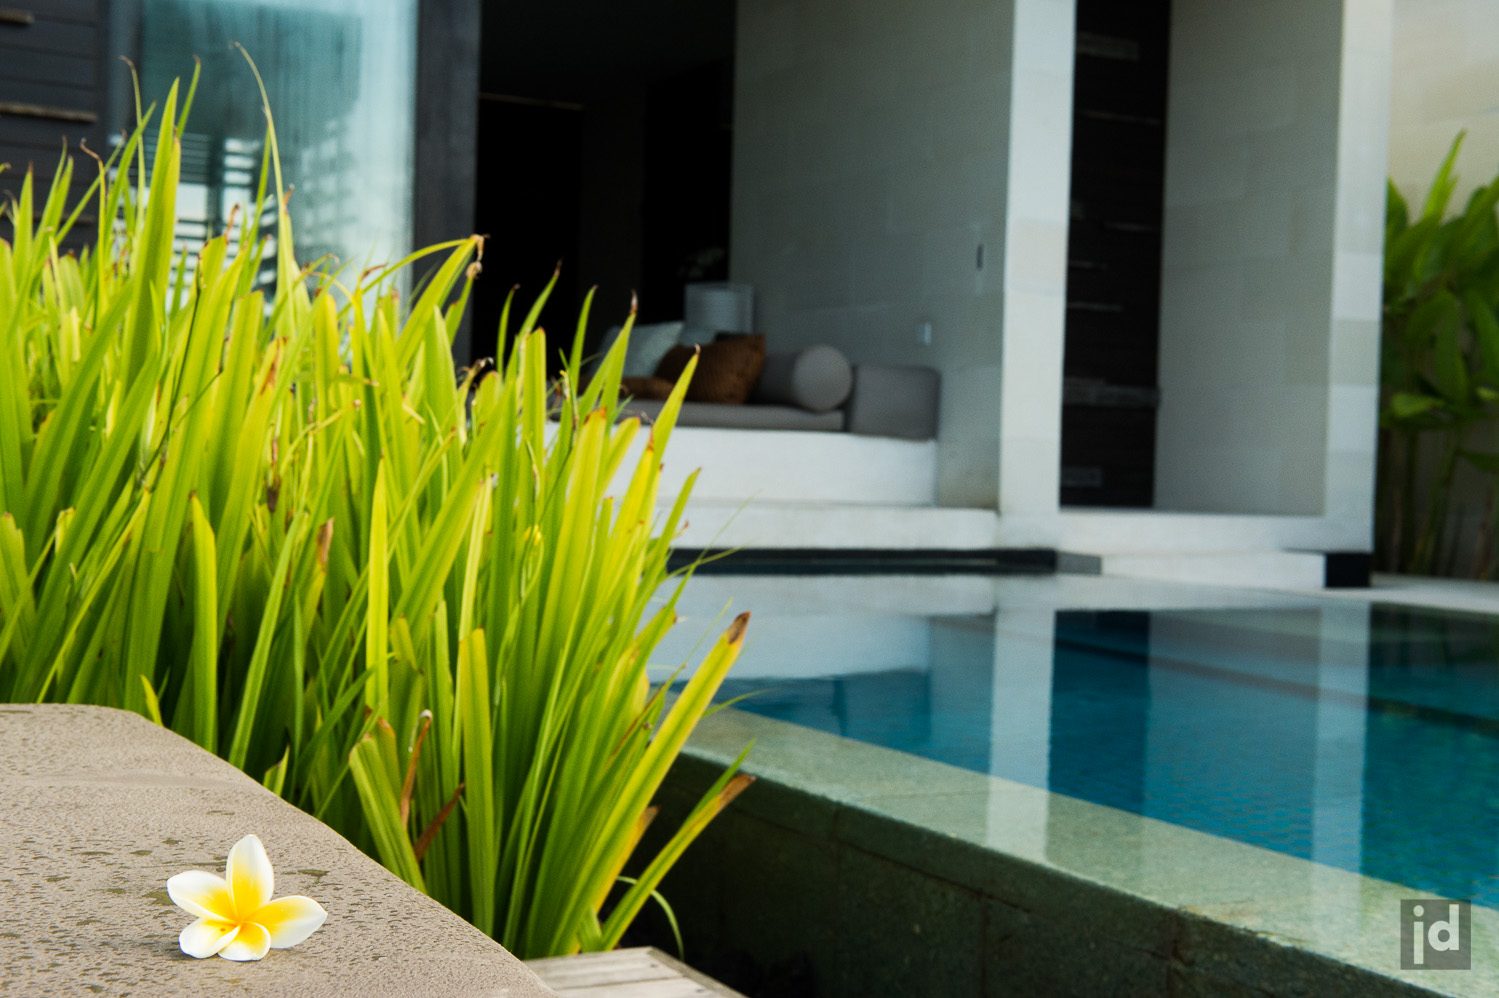 Bali_Indonesia_Photography_Jason_Davis_Images_002.jpg